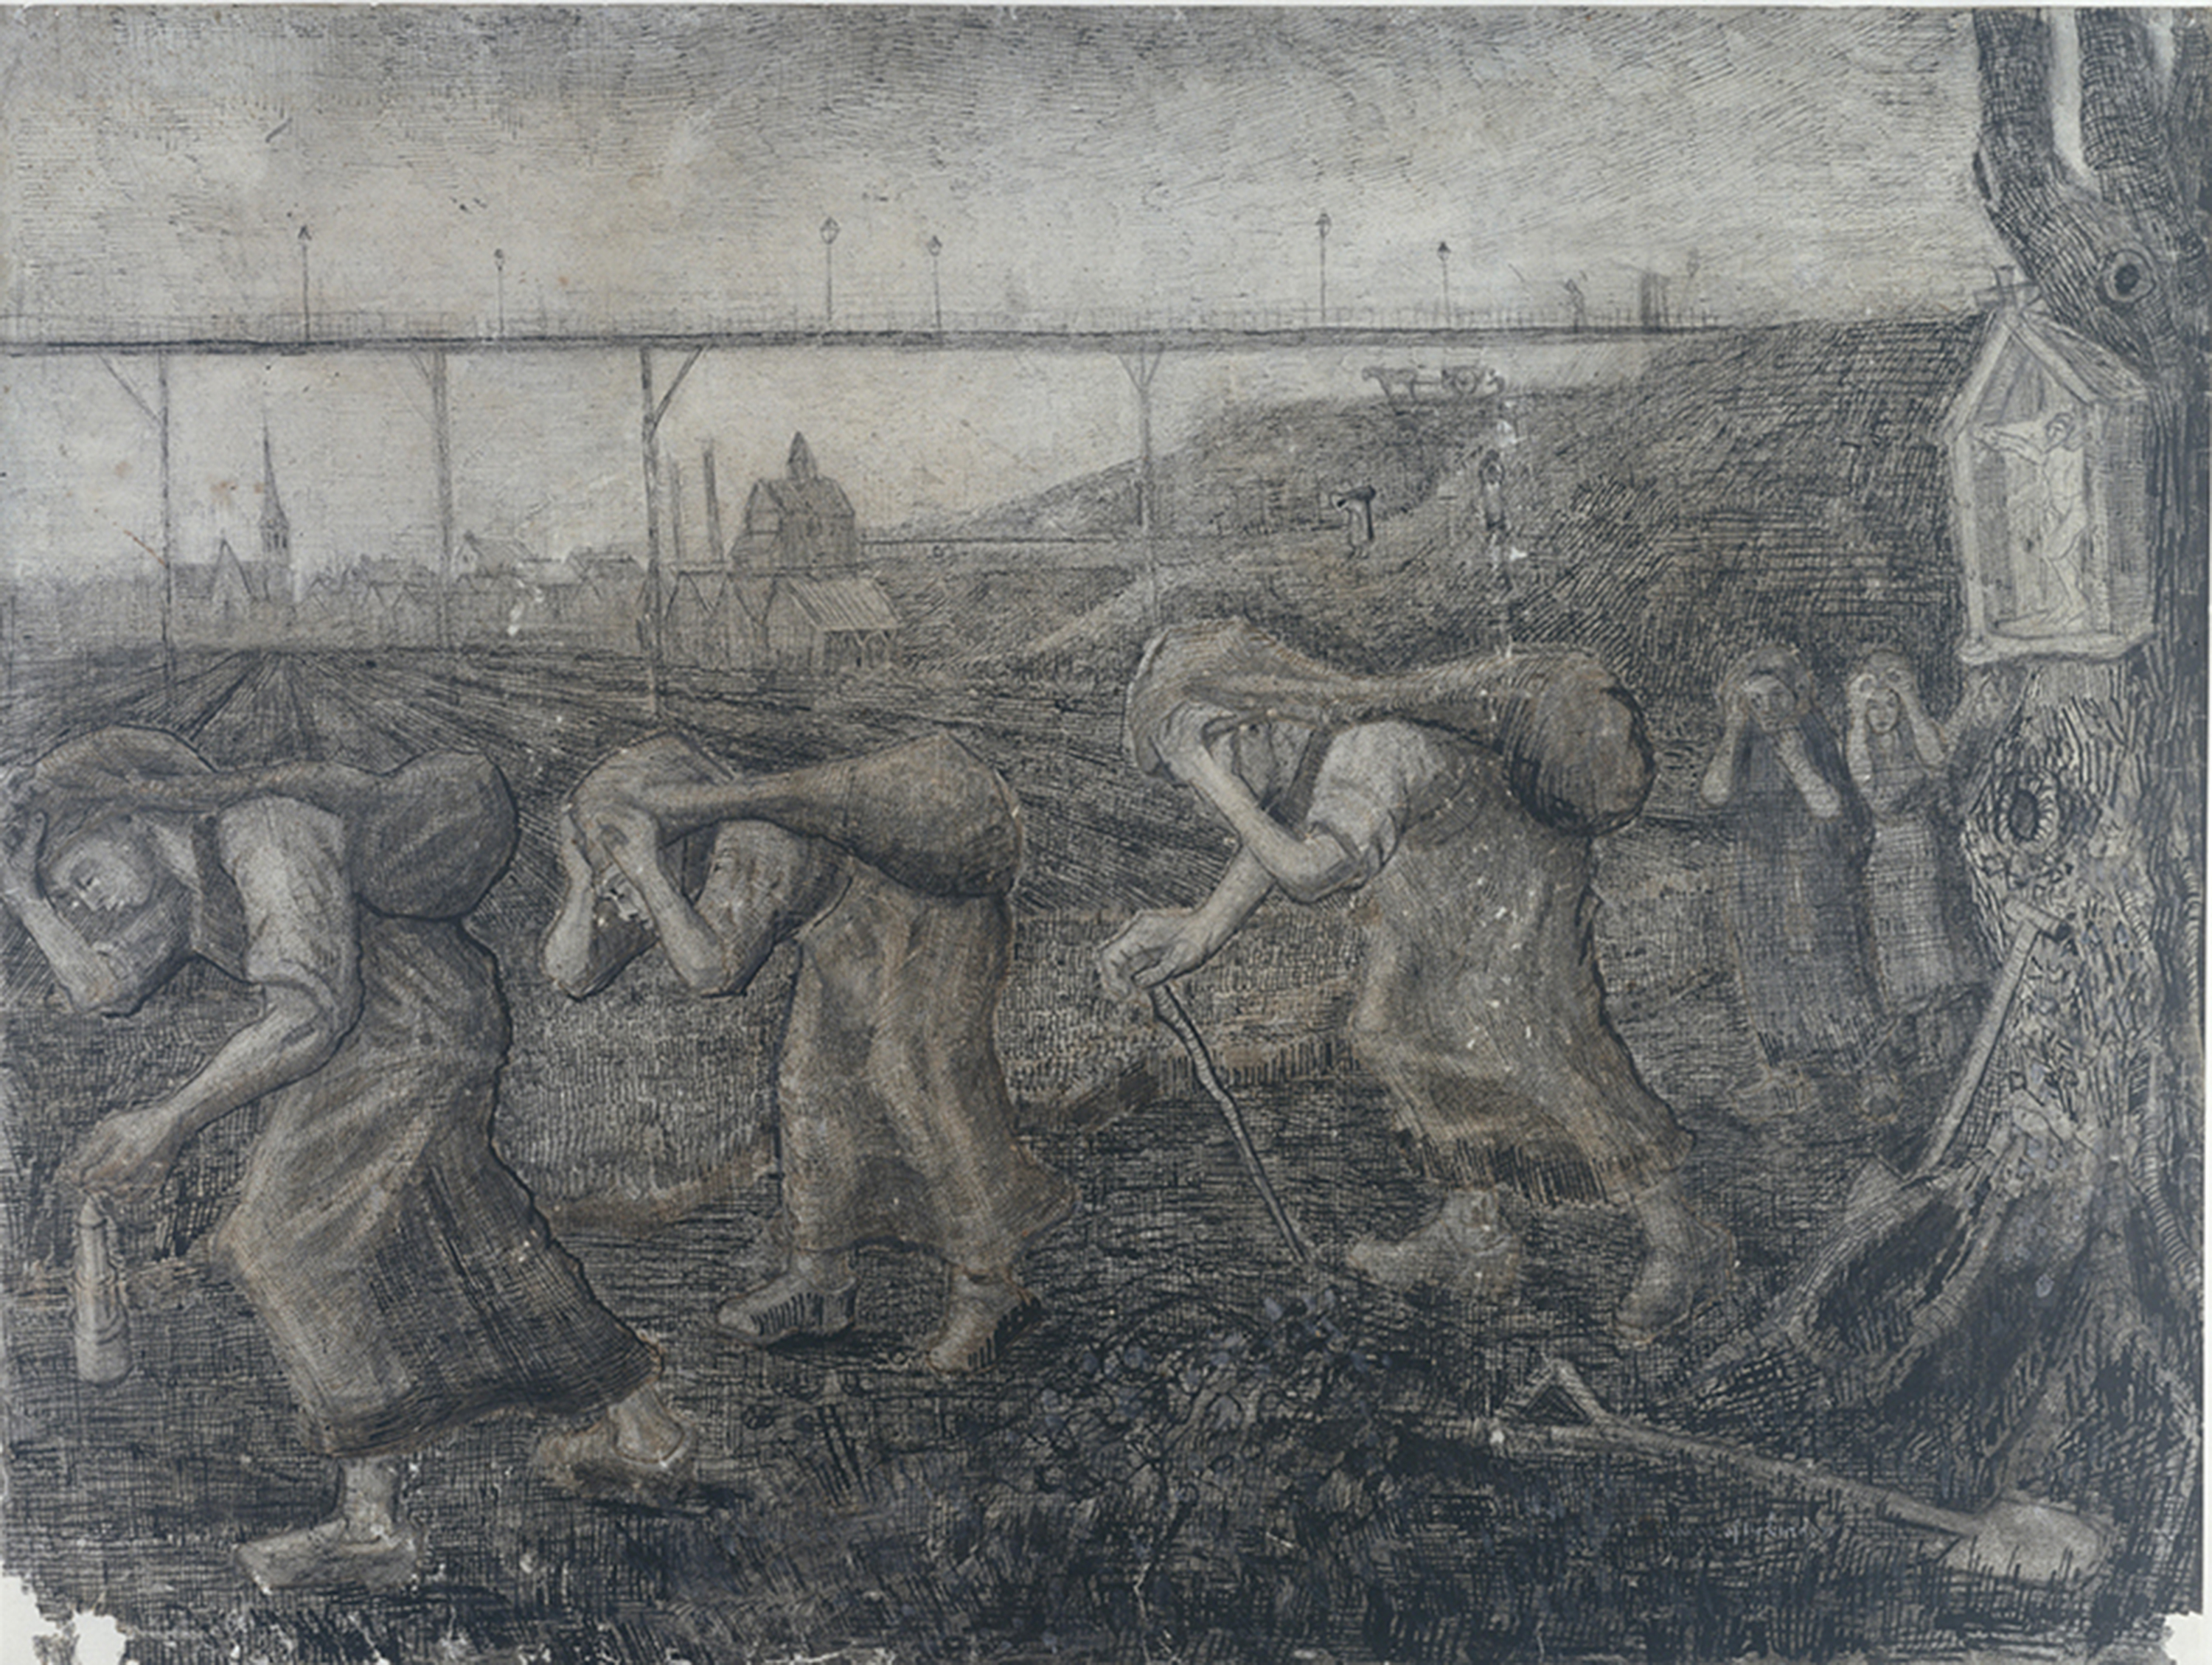 Miners Returning Home, early drawing by Vincent Van Gogh, made in 1878